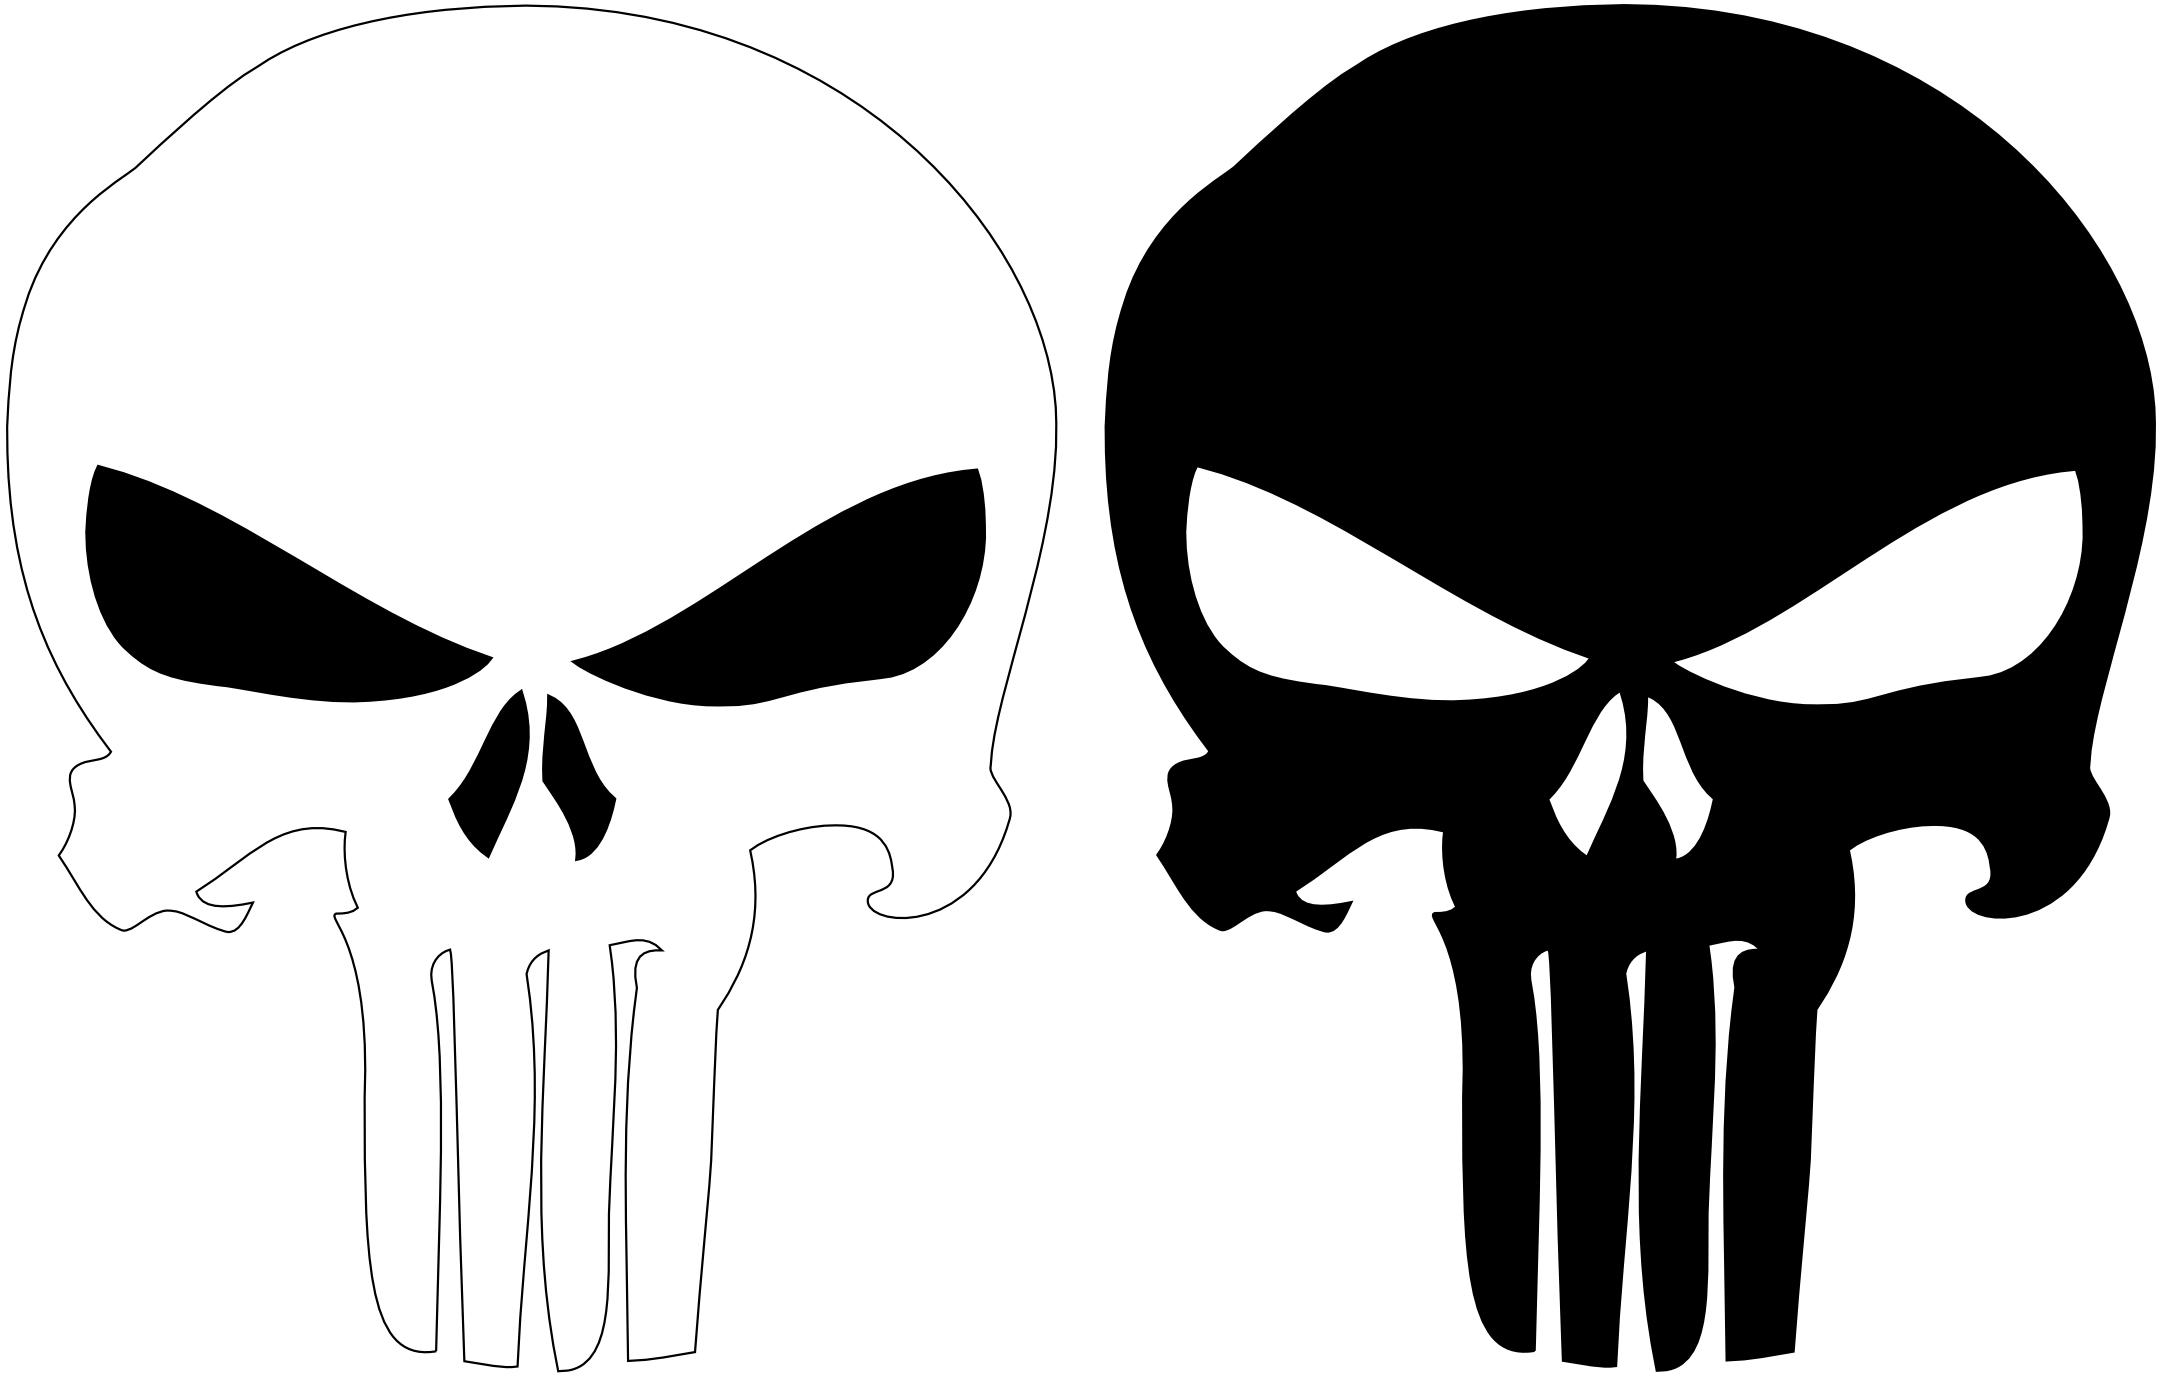 Free Punisher Skull Cliparts, Download Free Clip Art, Free.